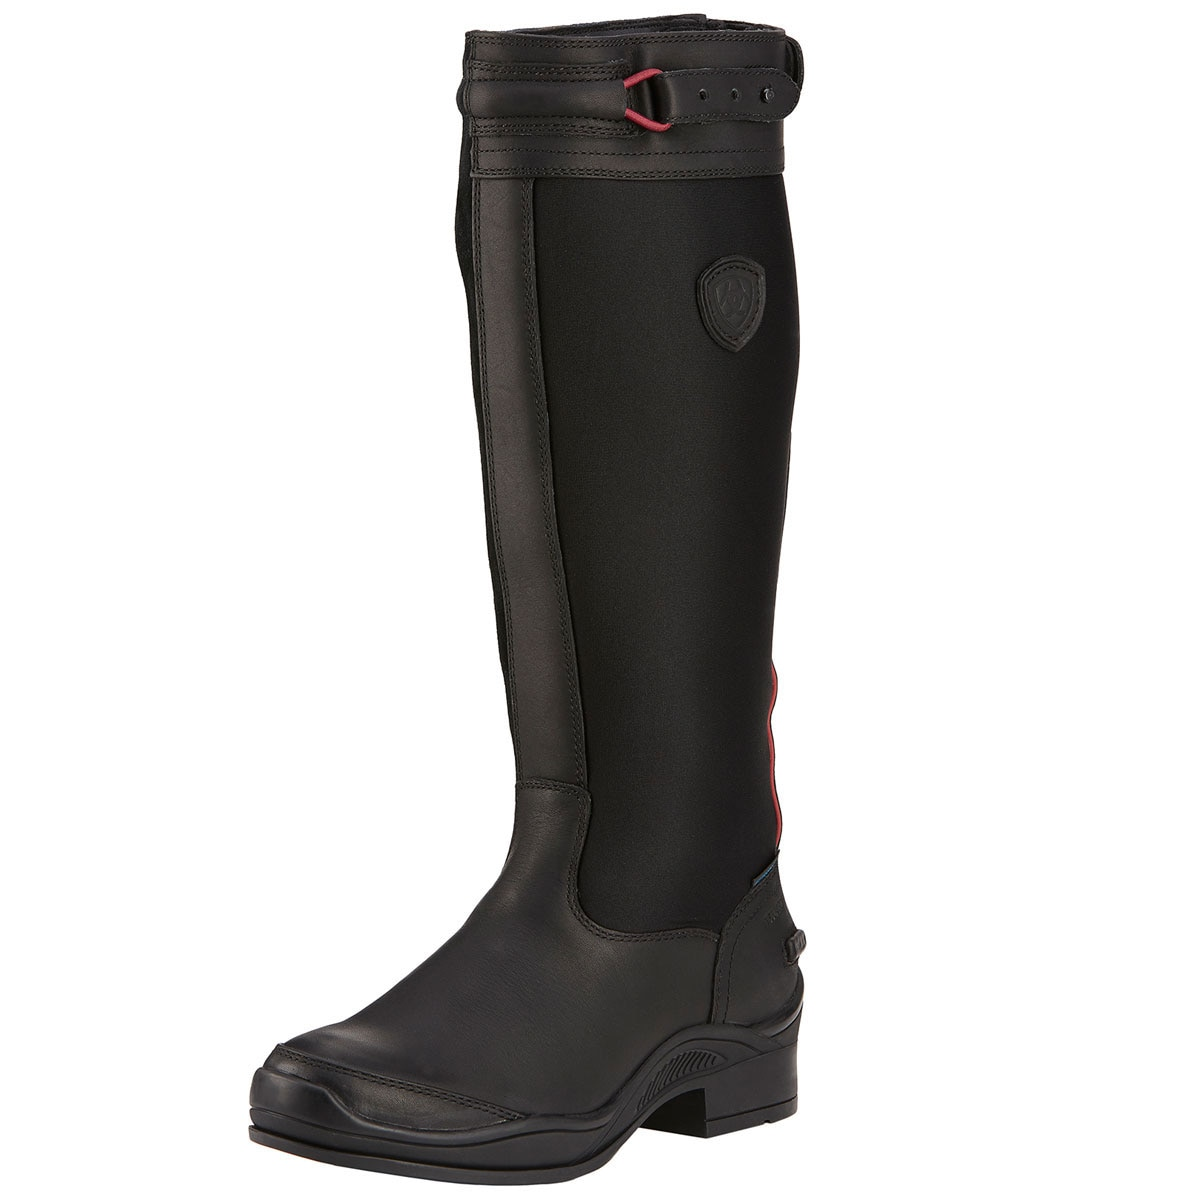 Ariat Extreme Tall H20 Insulated Boot